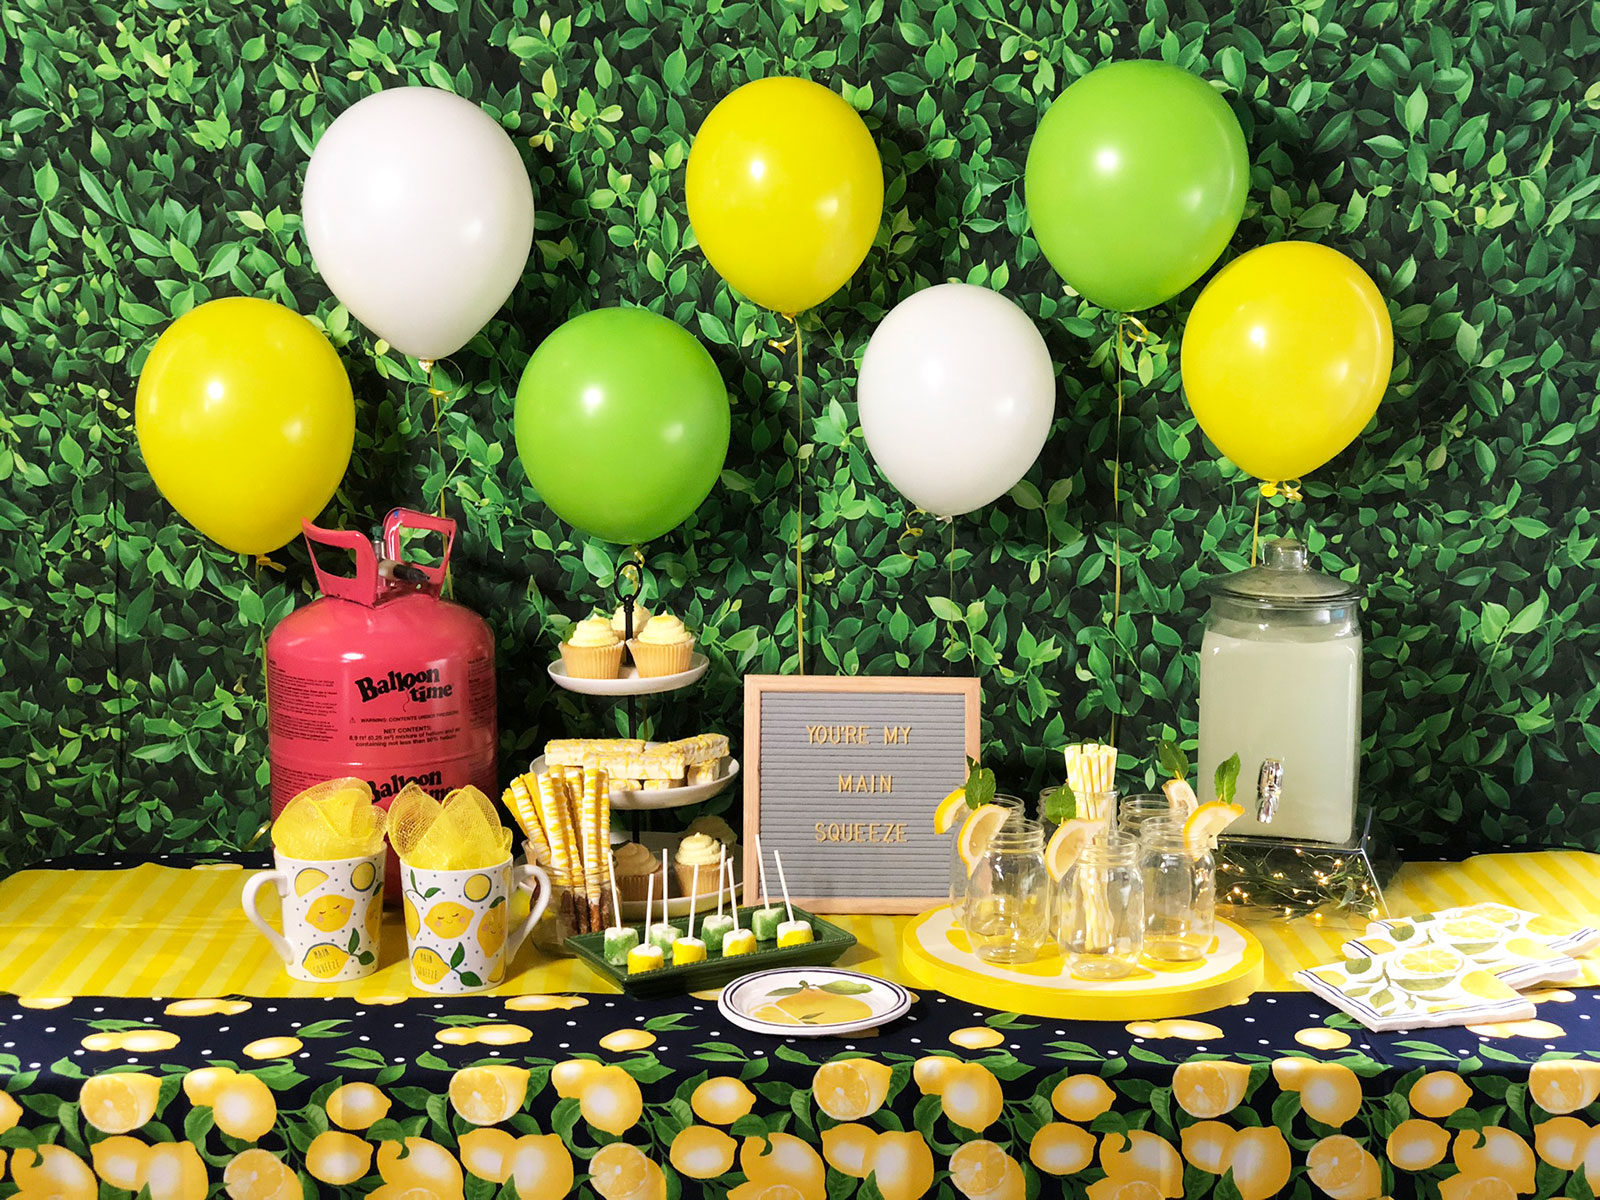 Decorative picnic table with balloon centerpiece